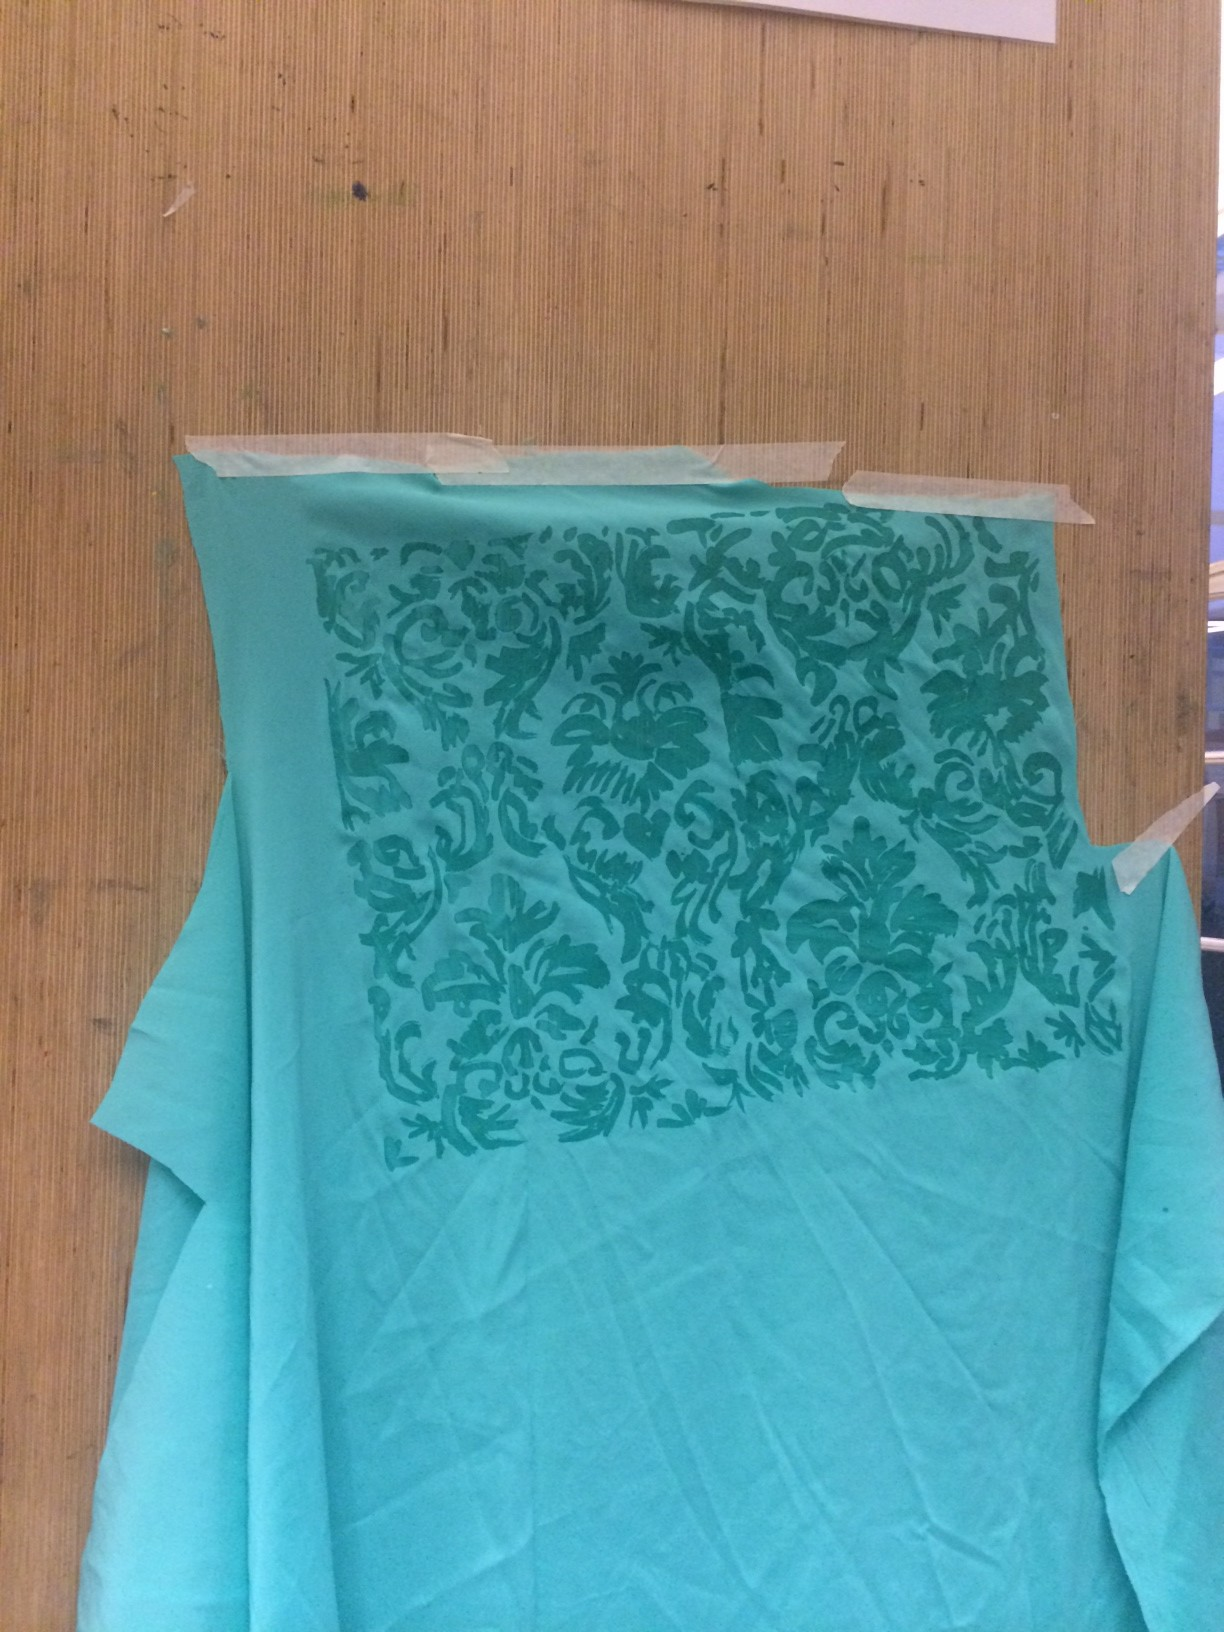 damask design transferred with hot wax